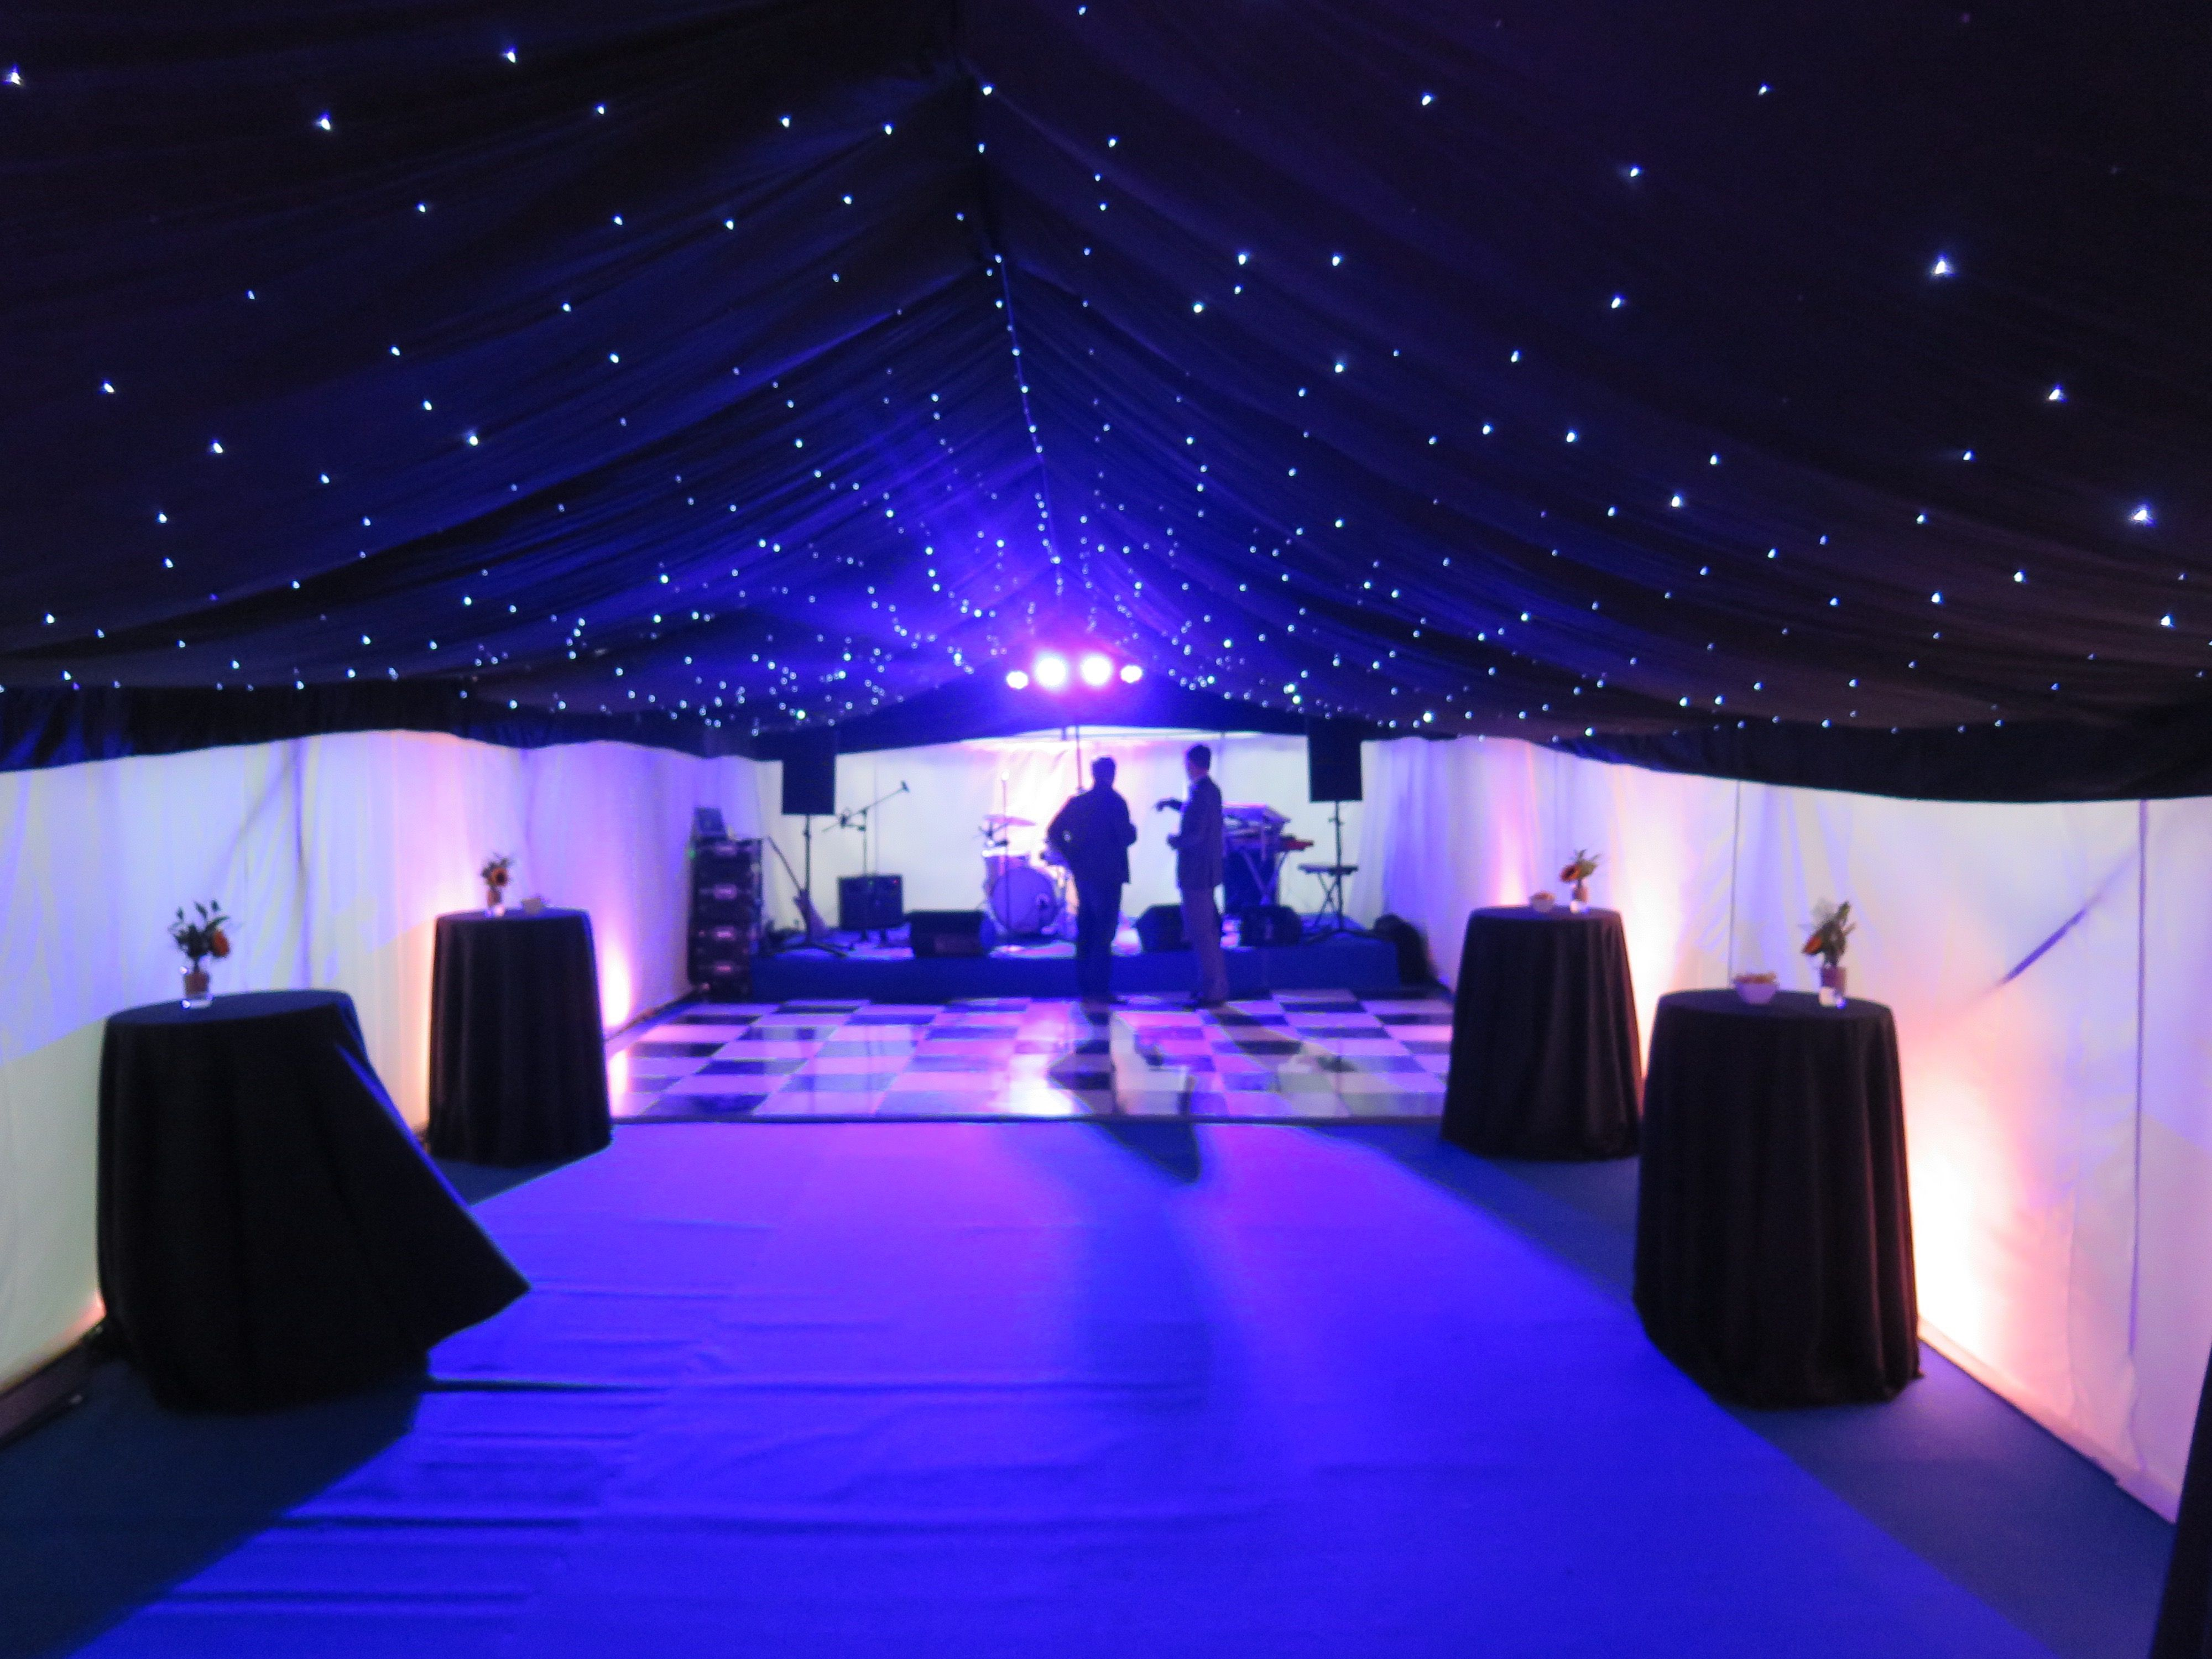 Marquee With Black Star Cloth Roof Lining And White Walls In